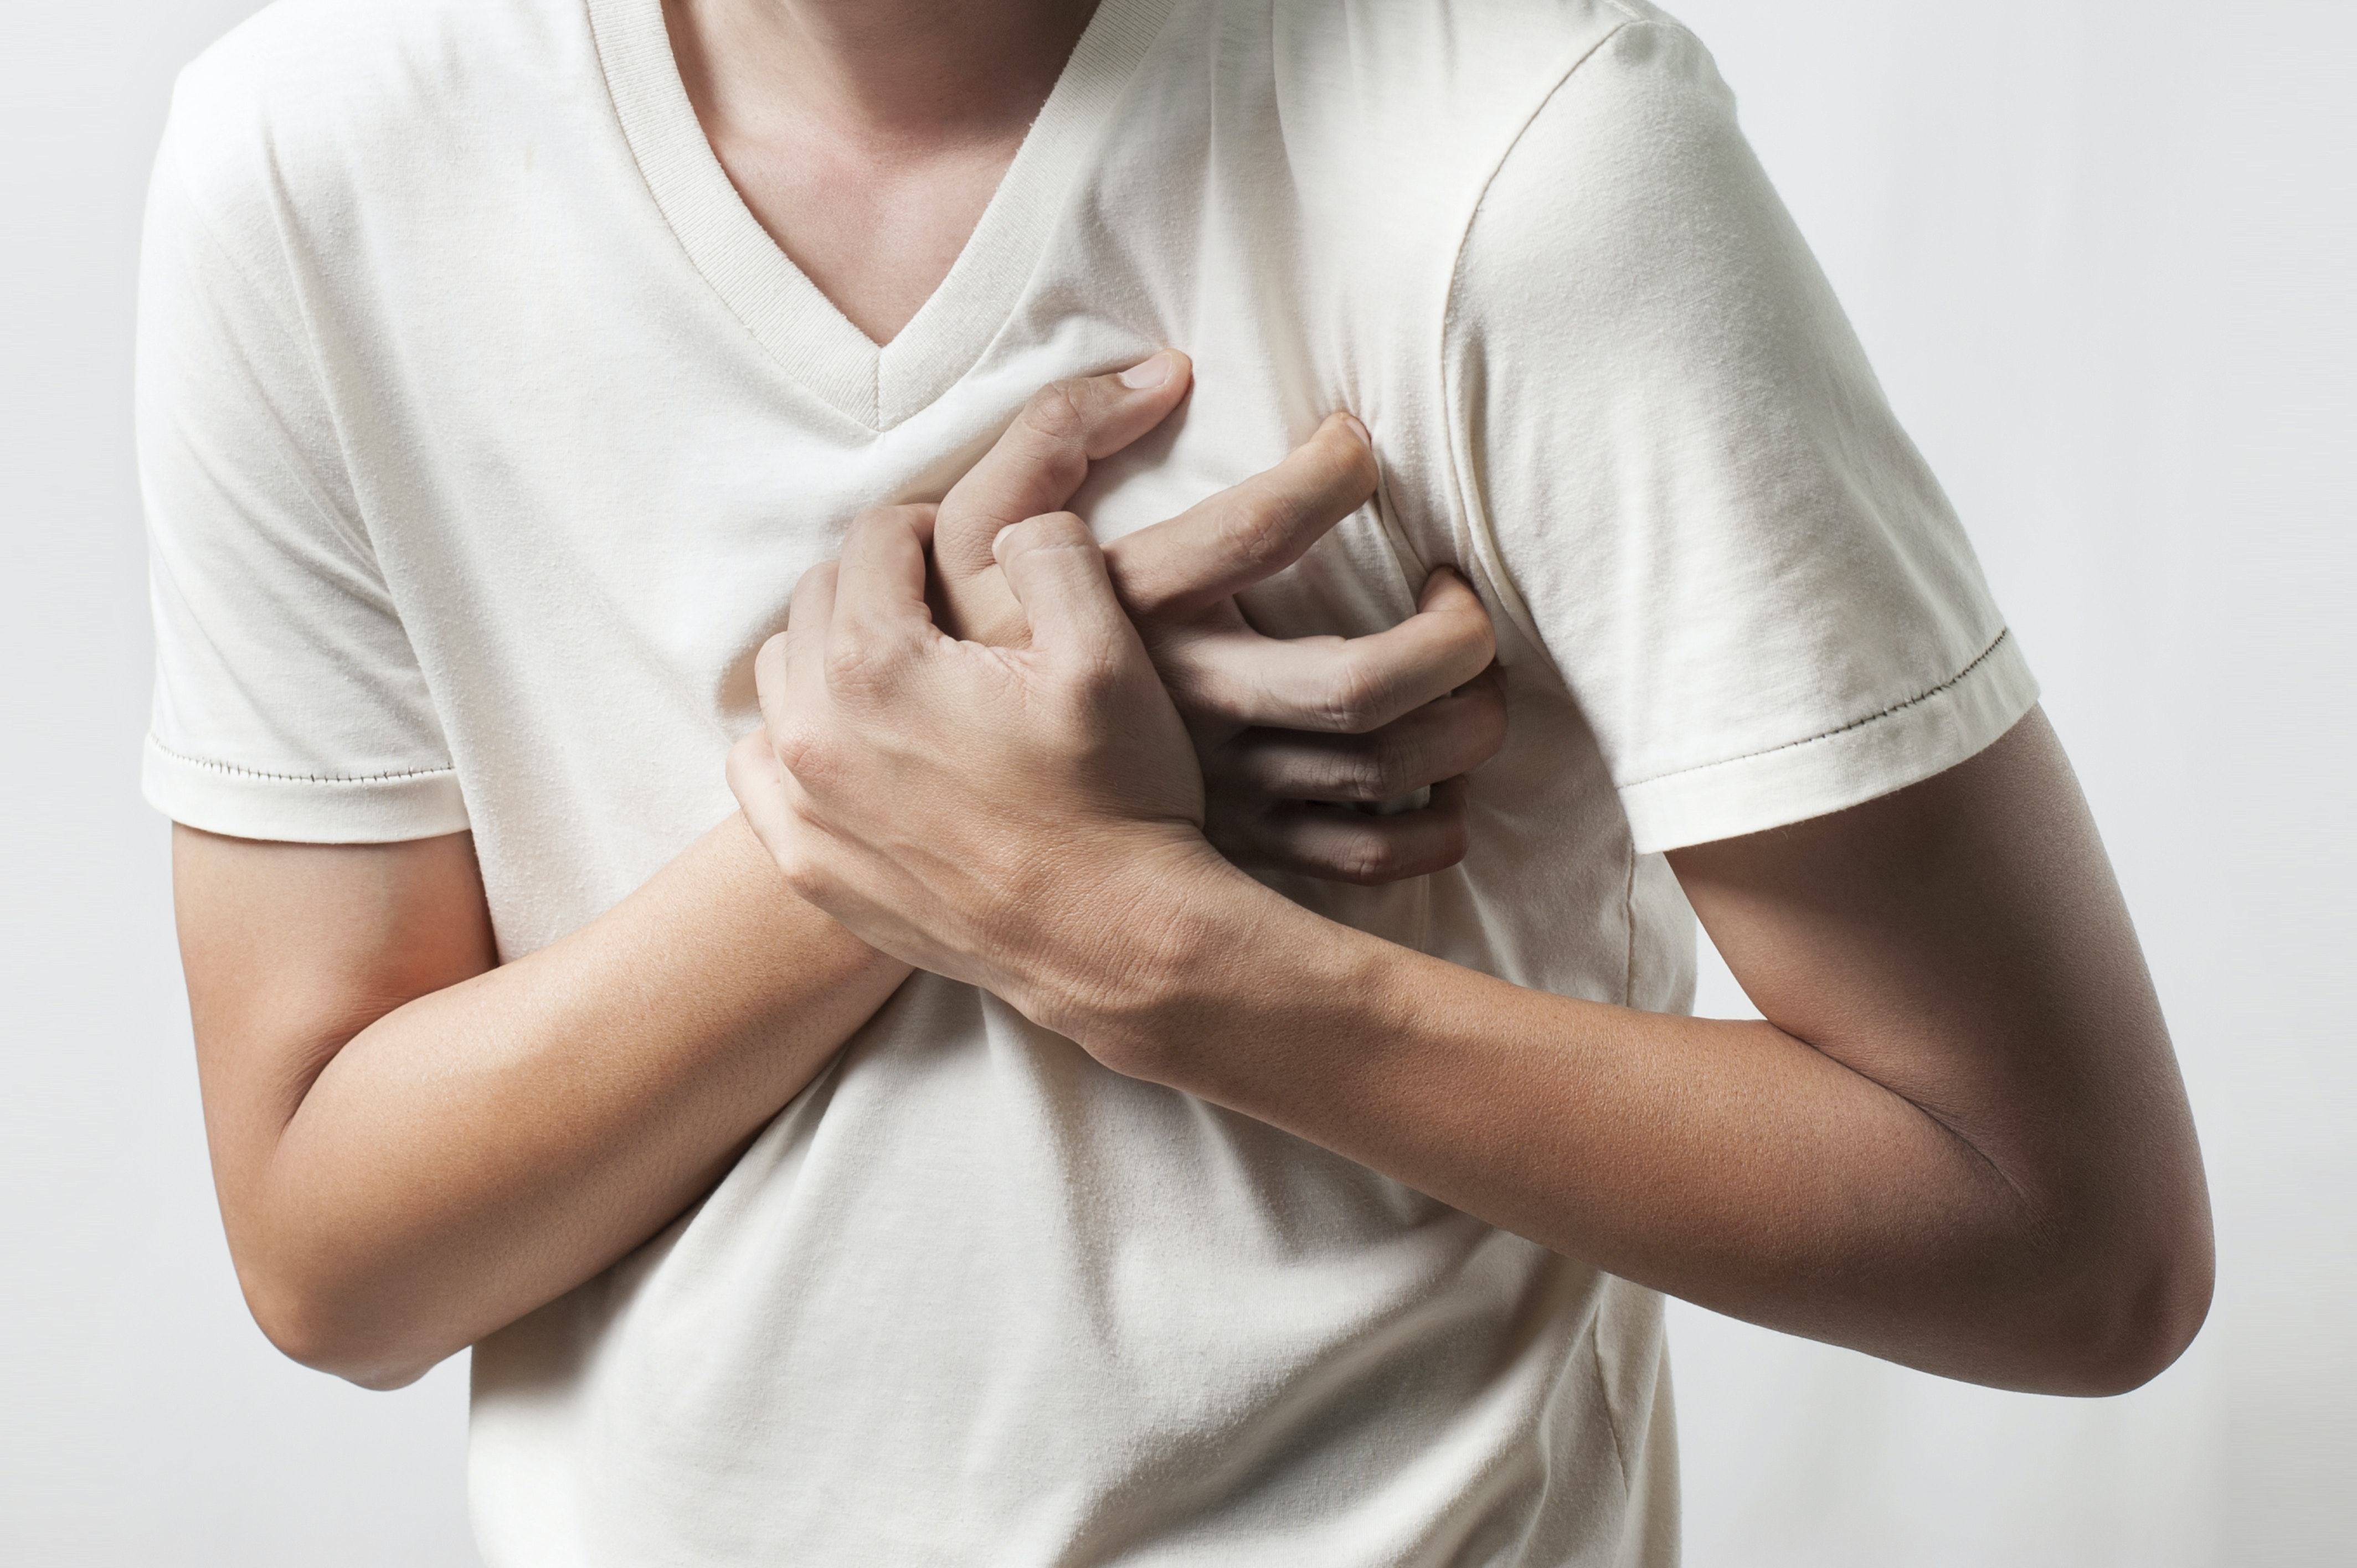 An image depicting a person suffering from painful chest wall lump symptoms